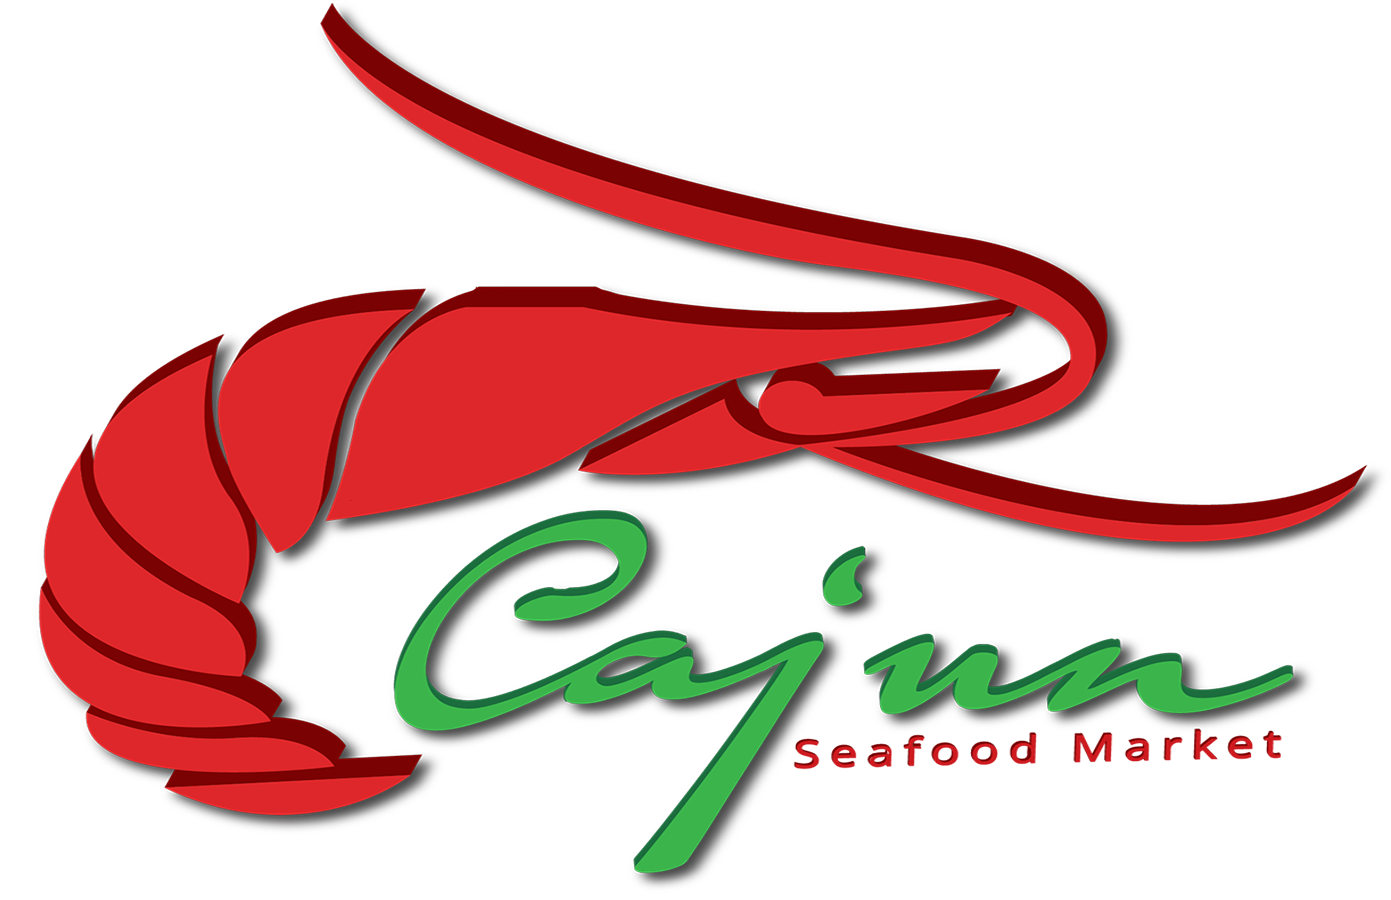 Crabs clipart crab boil. Garlic catering the best